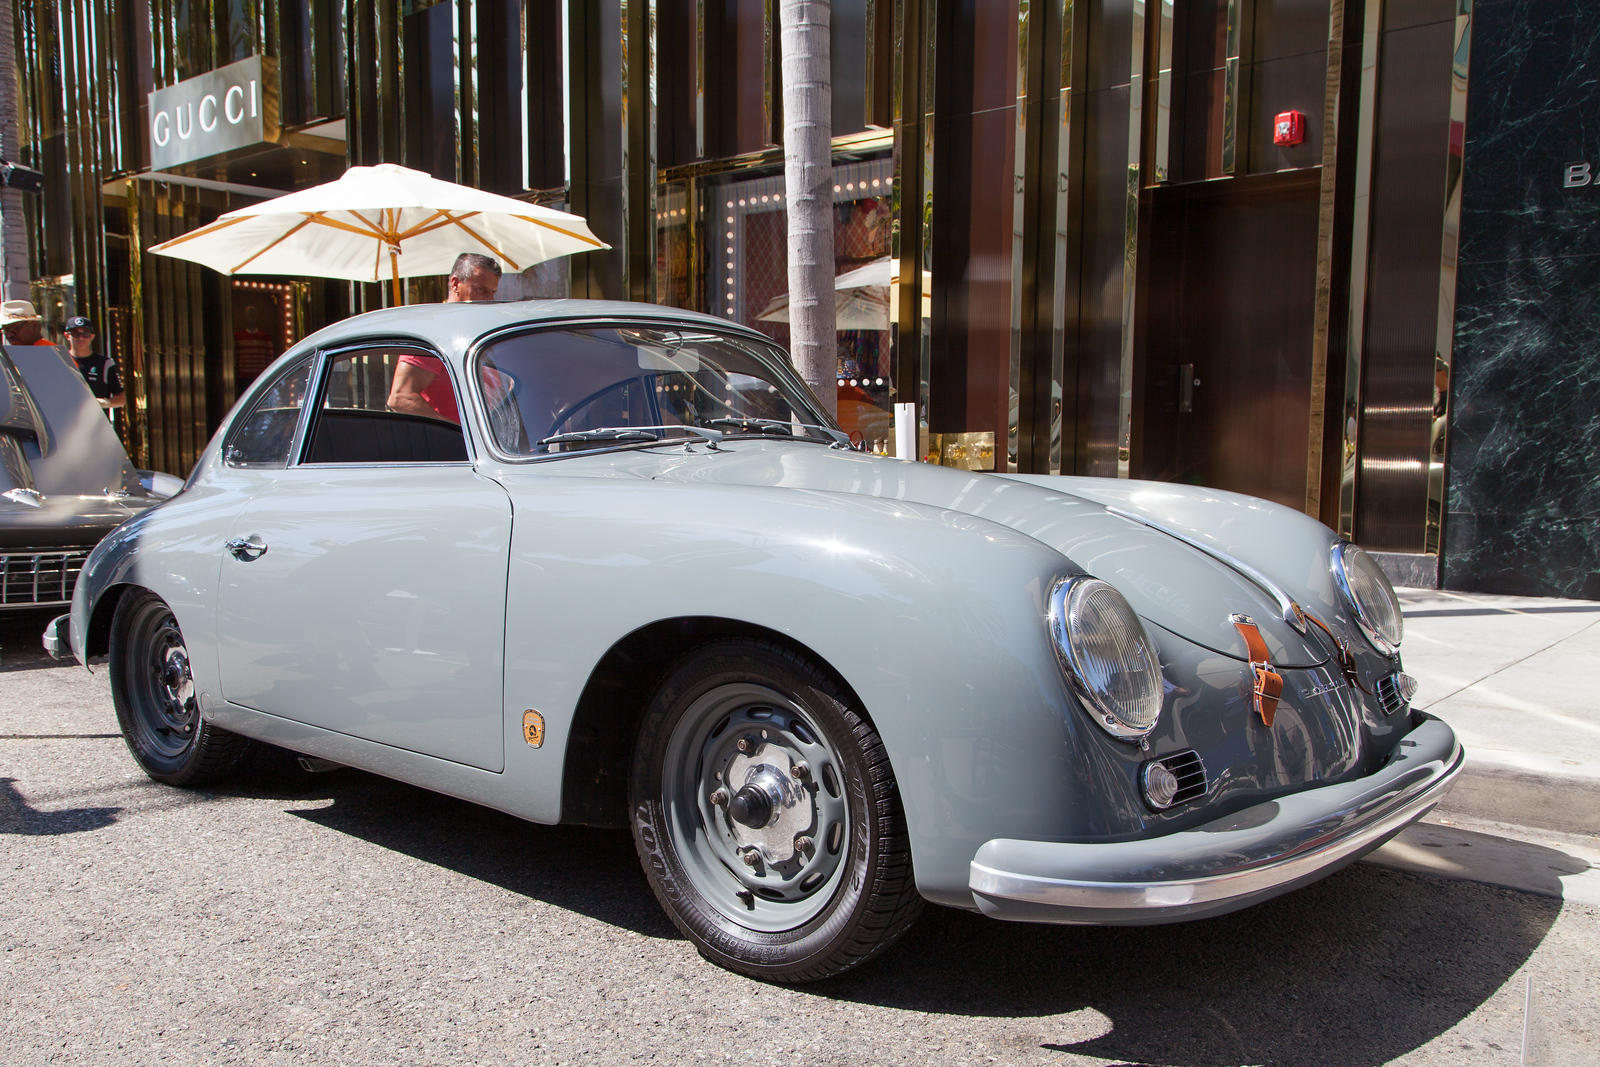 1956 Porsche 356A Coupe, owned by Keith Collins